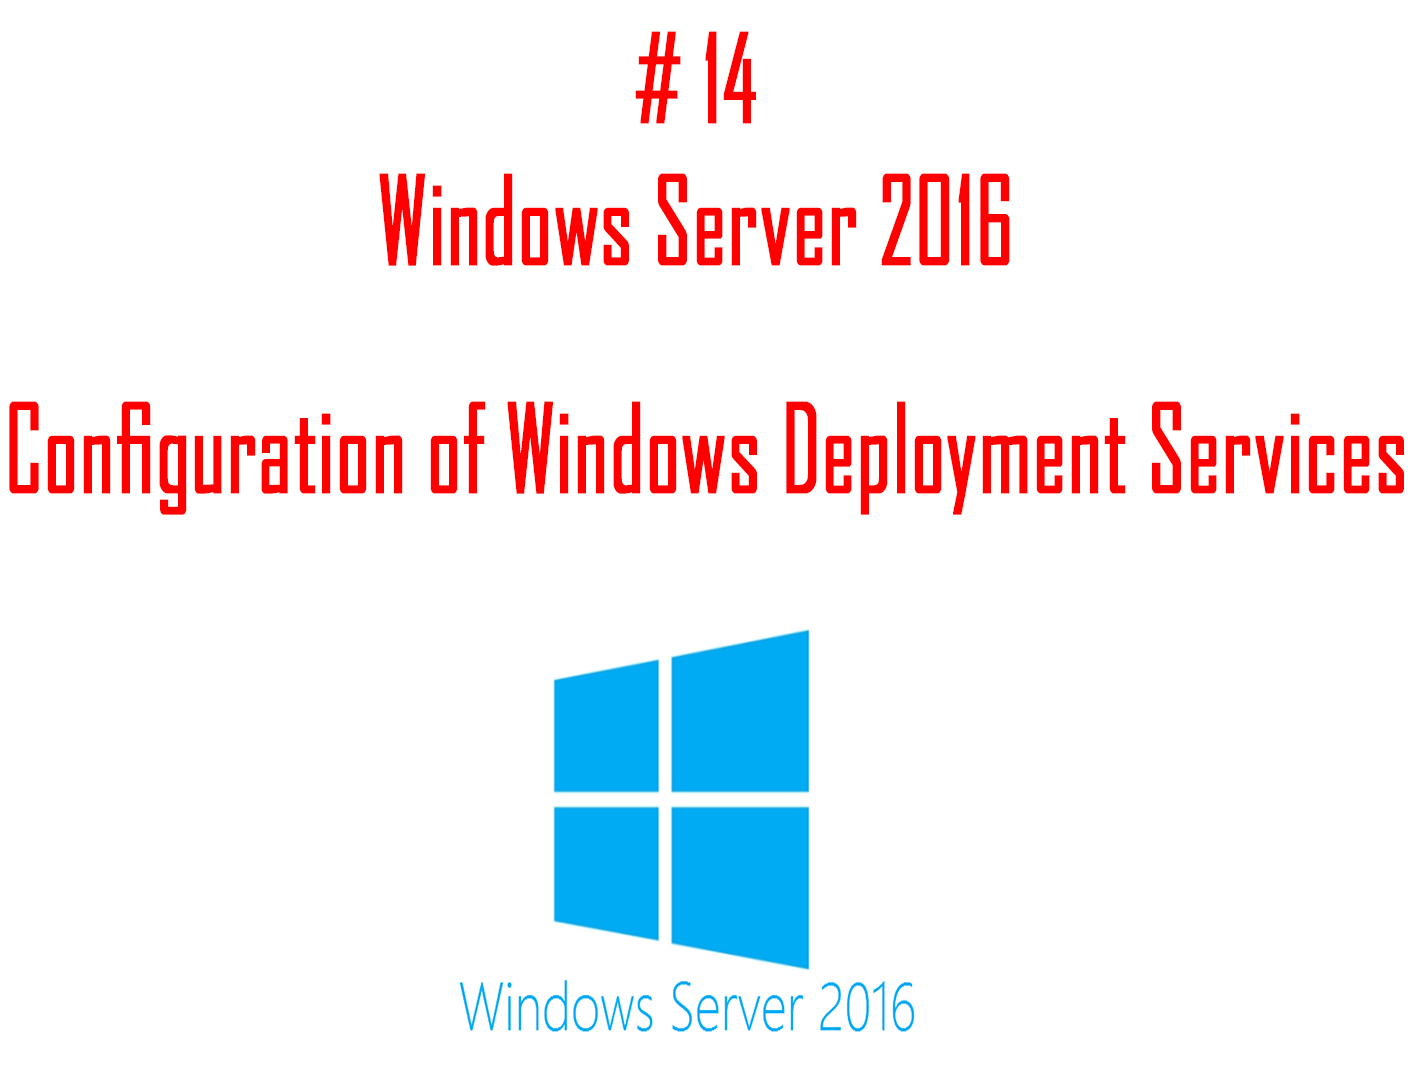 Configuration of Windows Deployment Services on Windows Server 2016